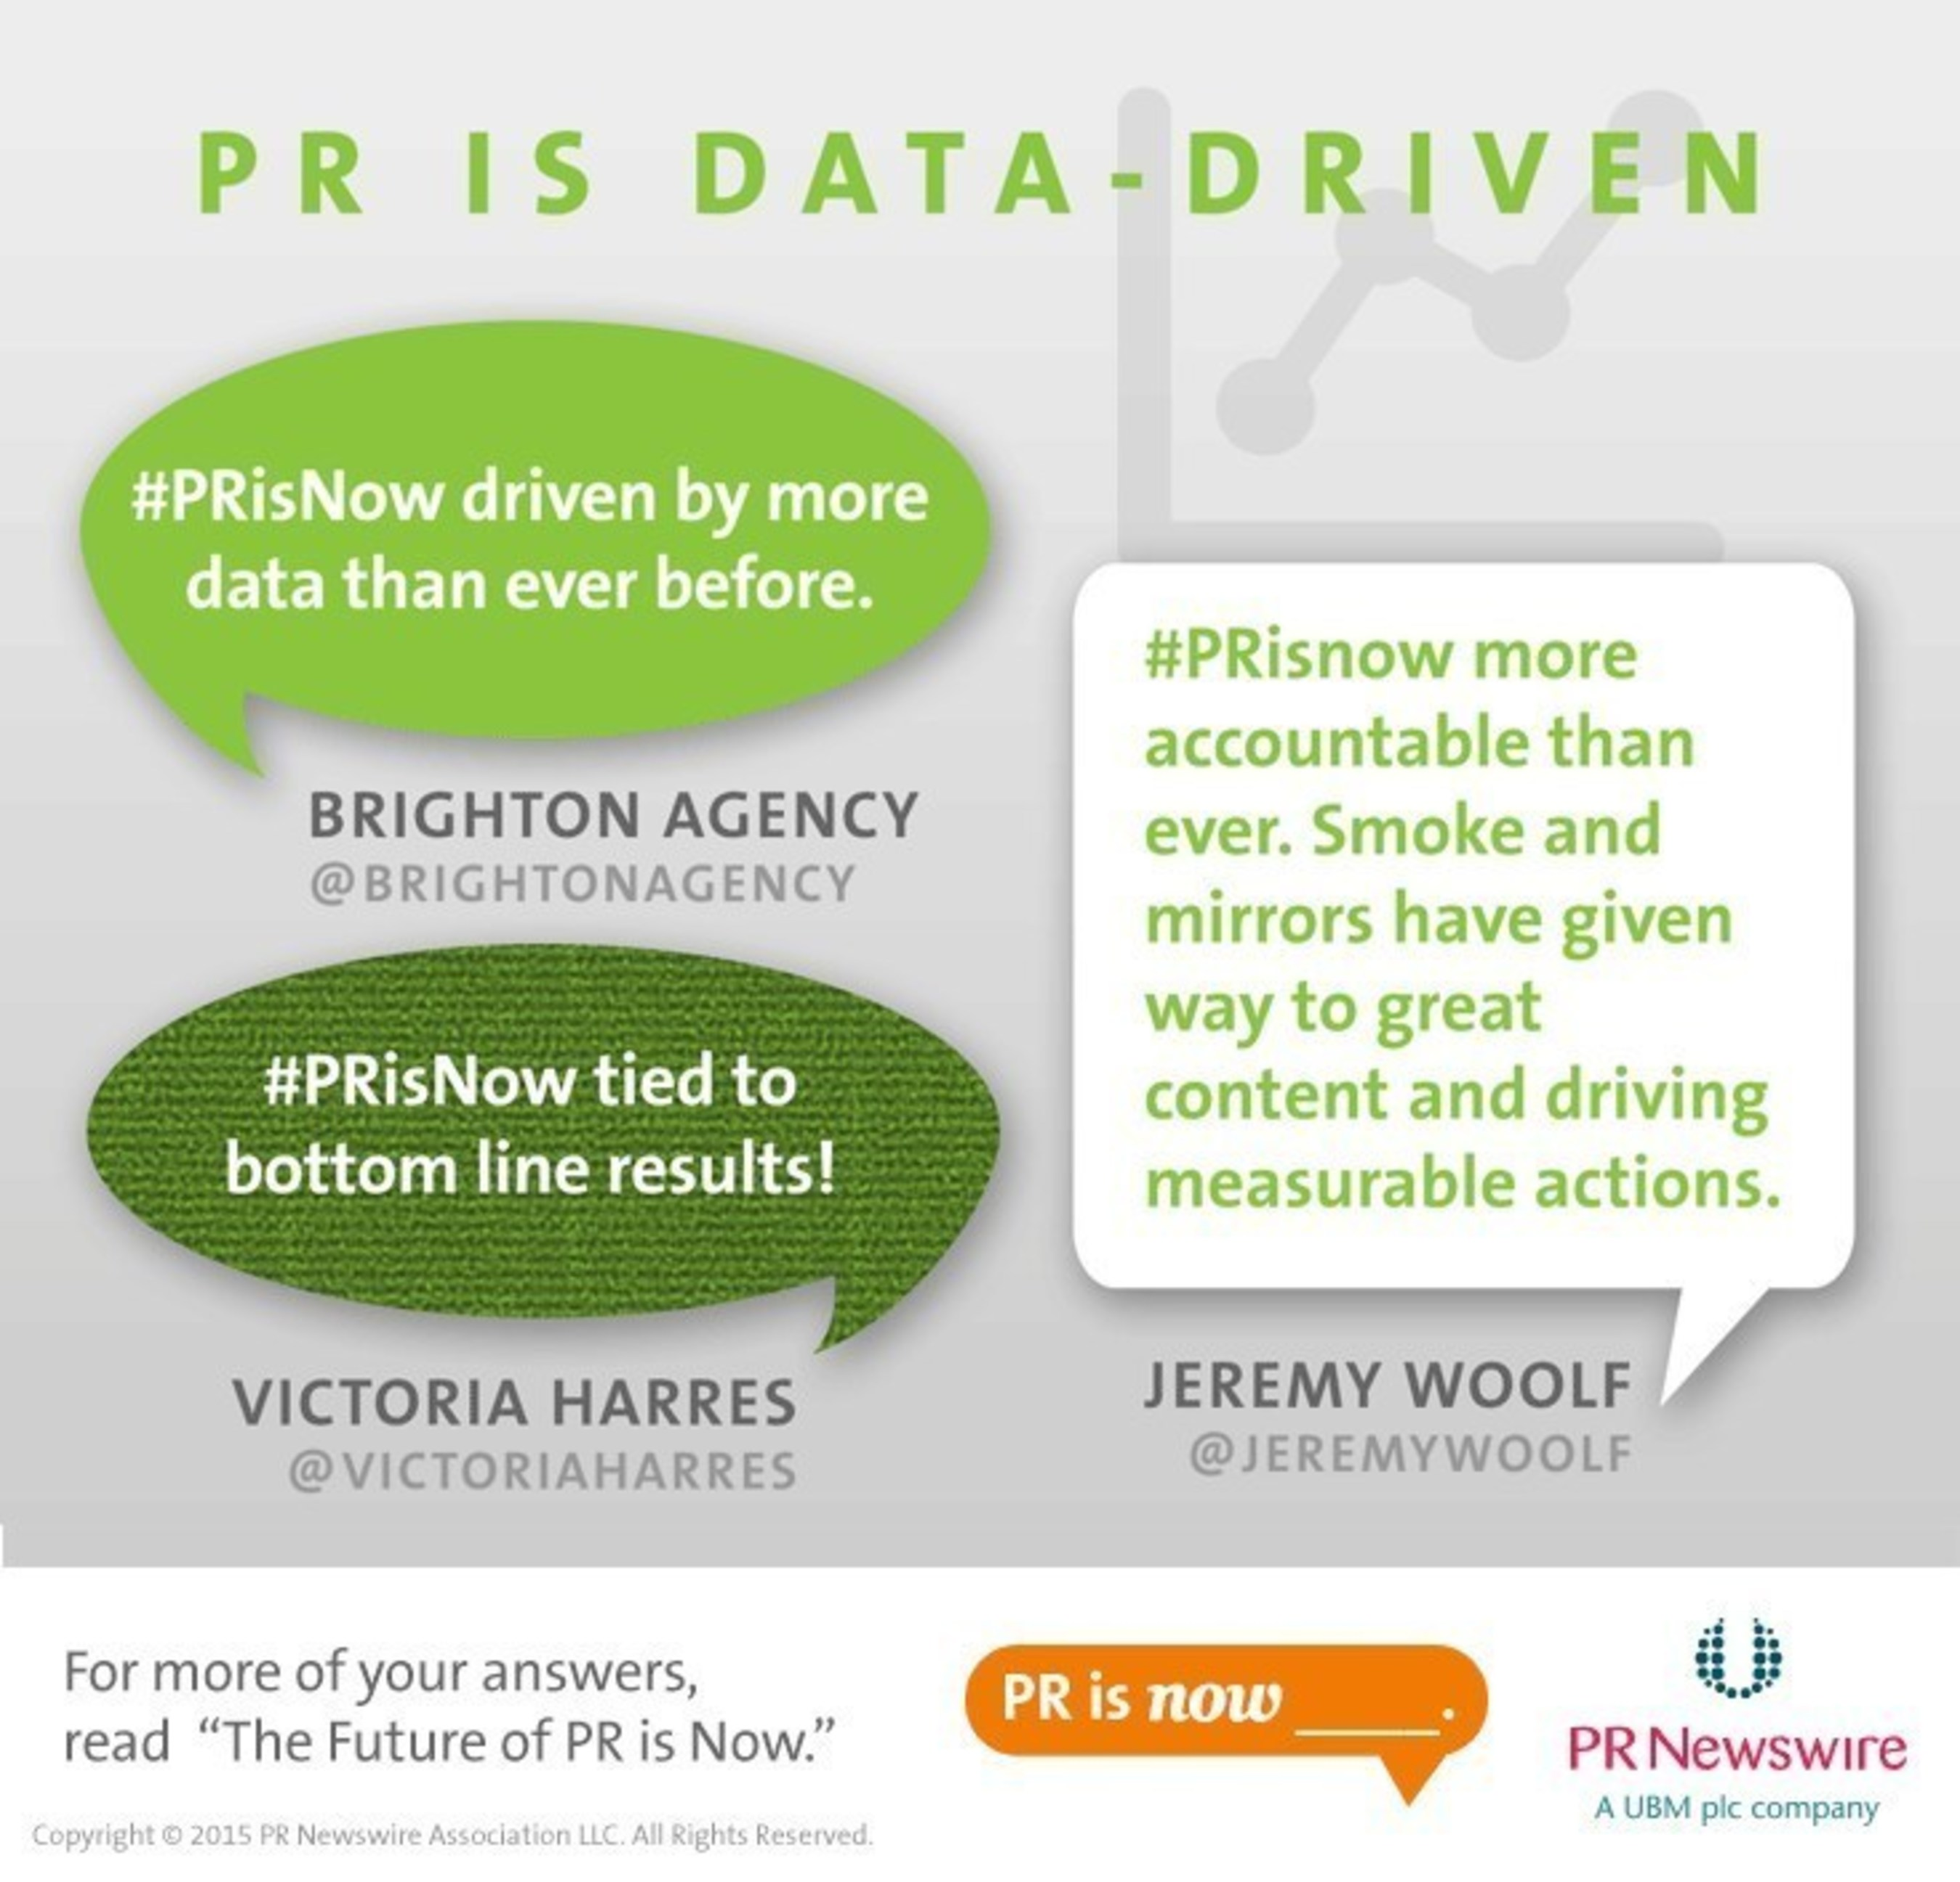 What do you think #PRisNow? Let us know @PRNewswire